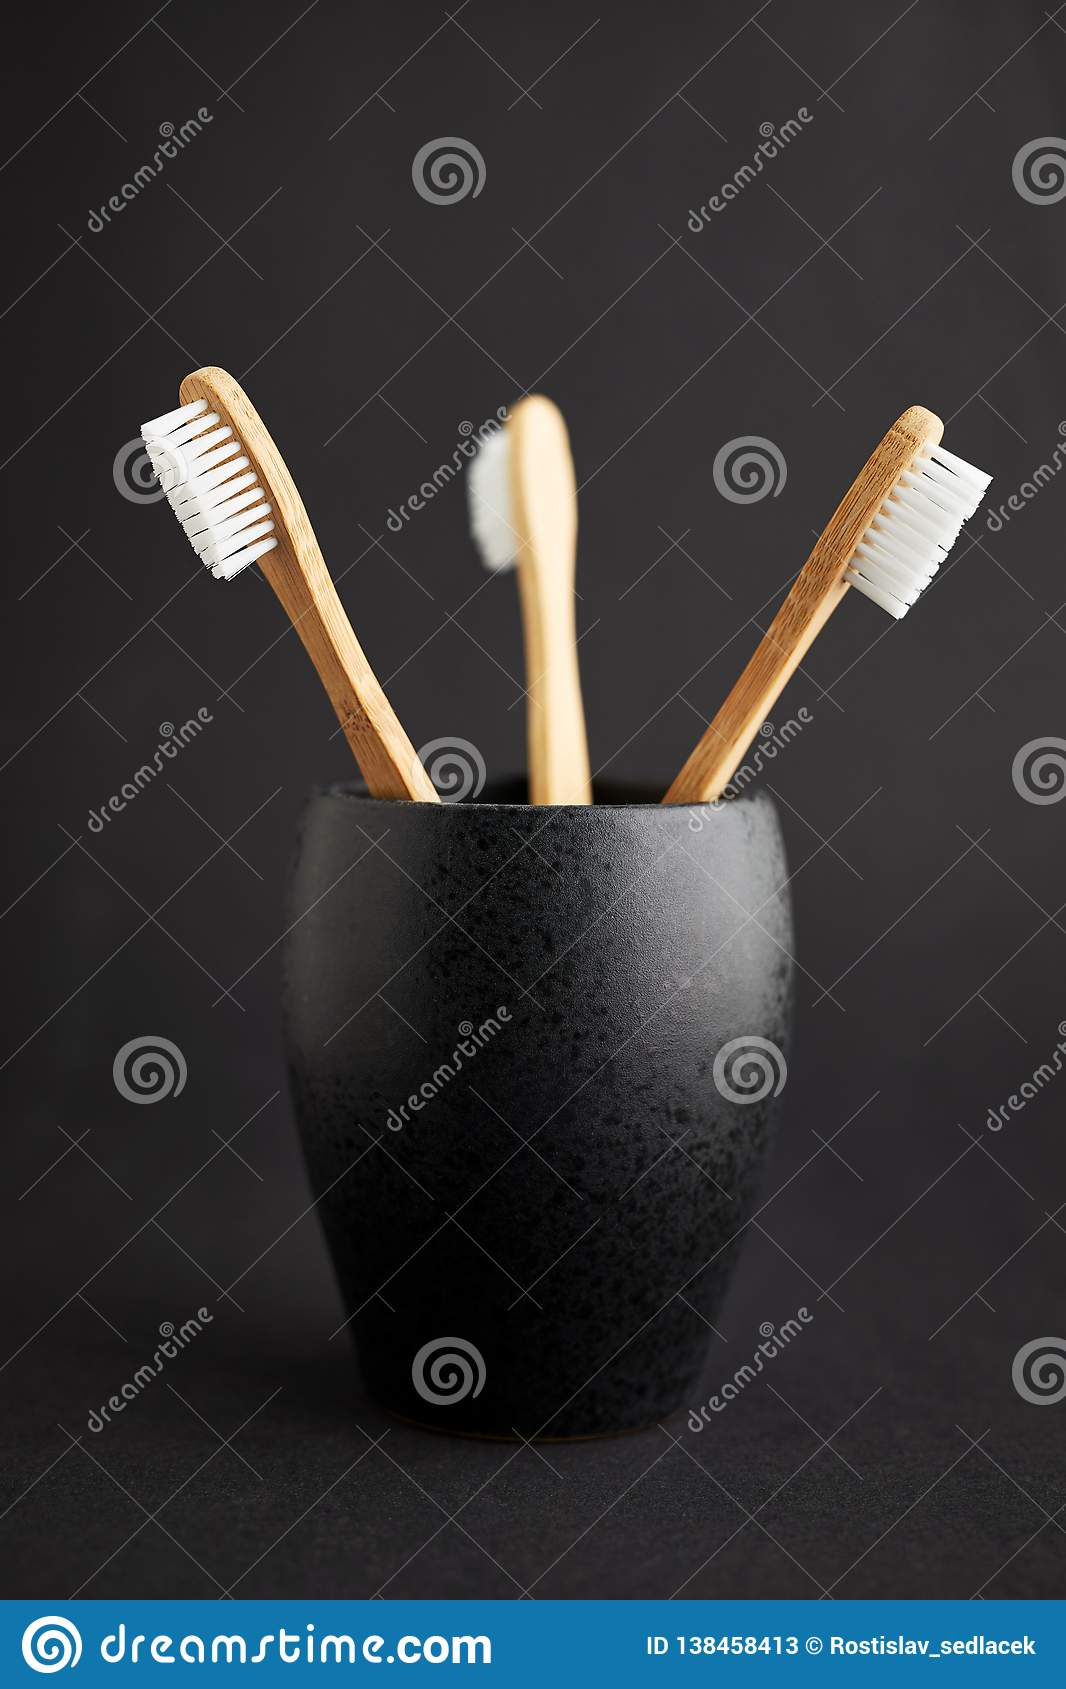 Three bamboo toothbrushes in a black glass